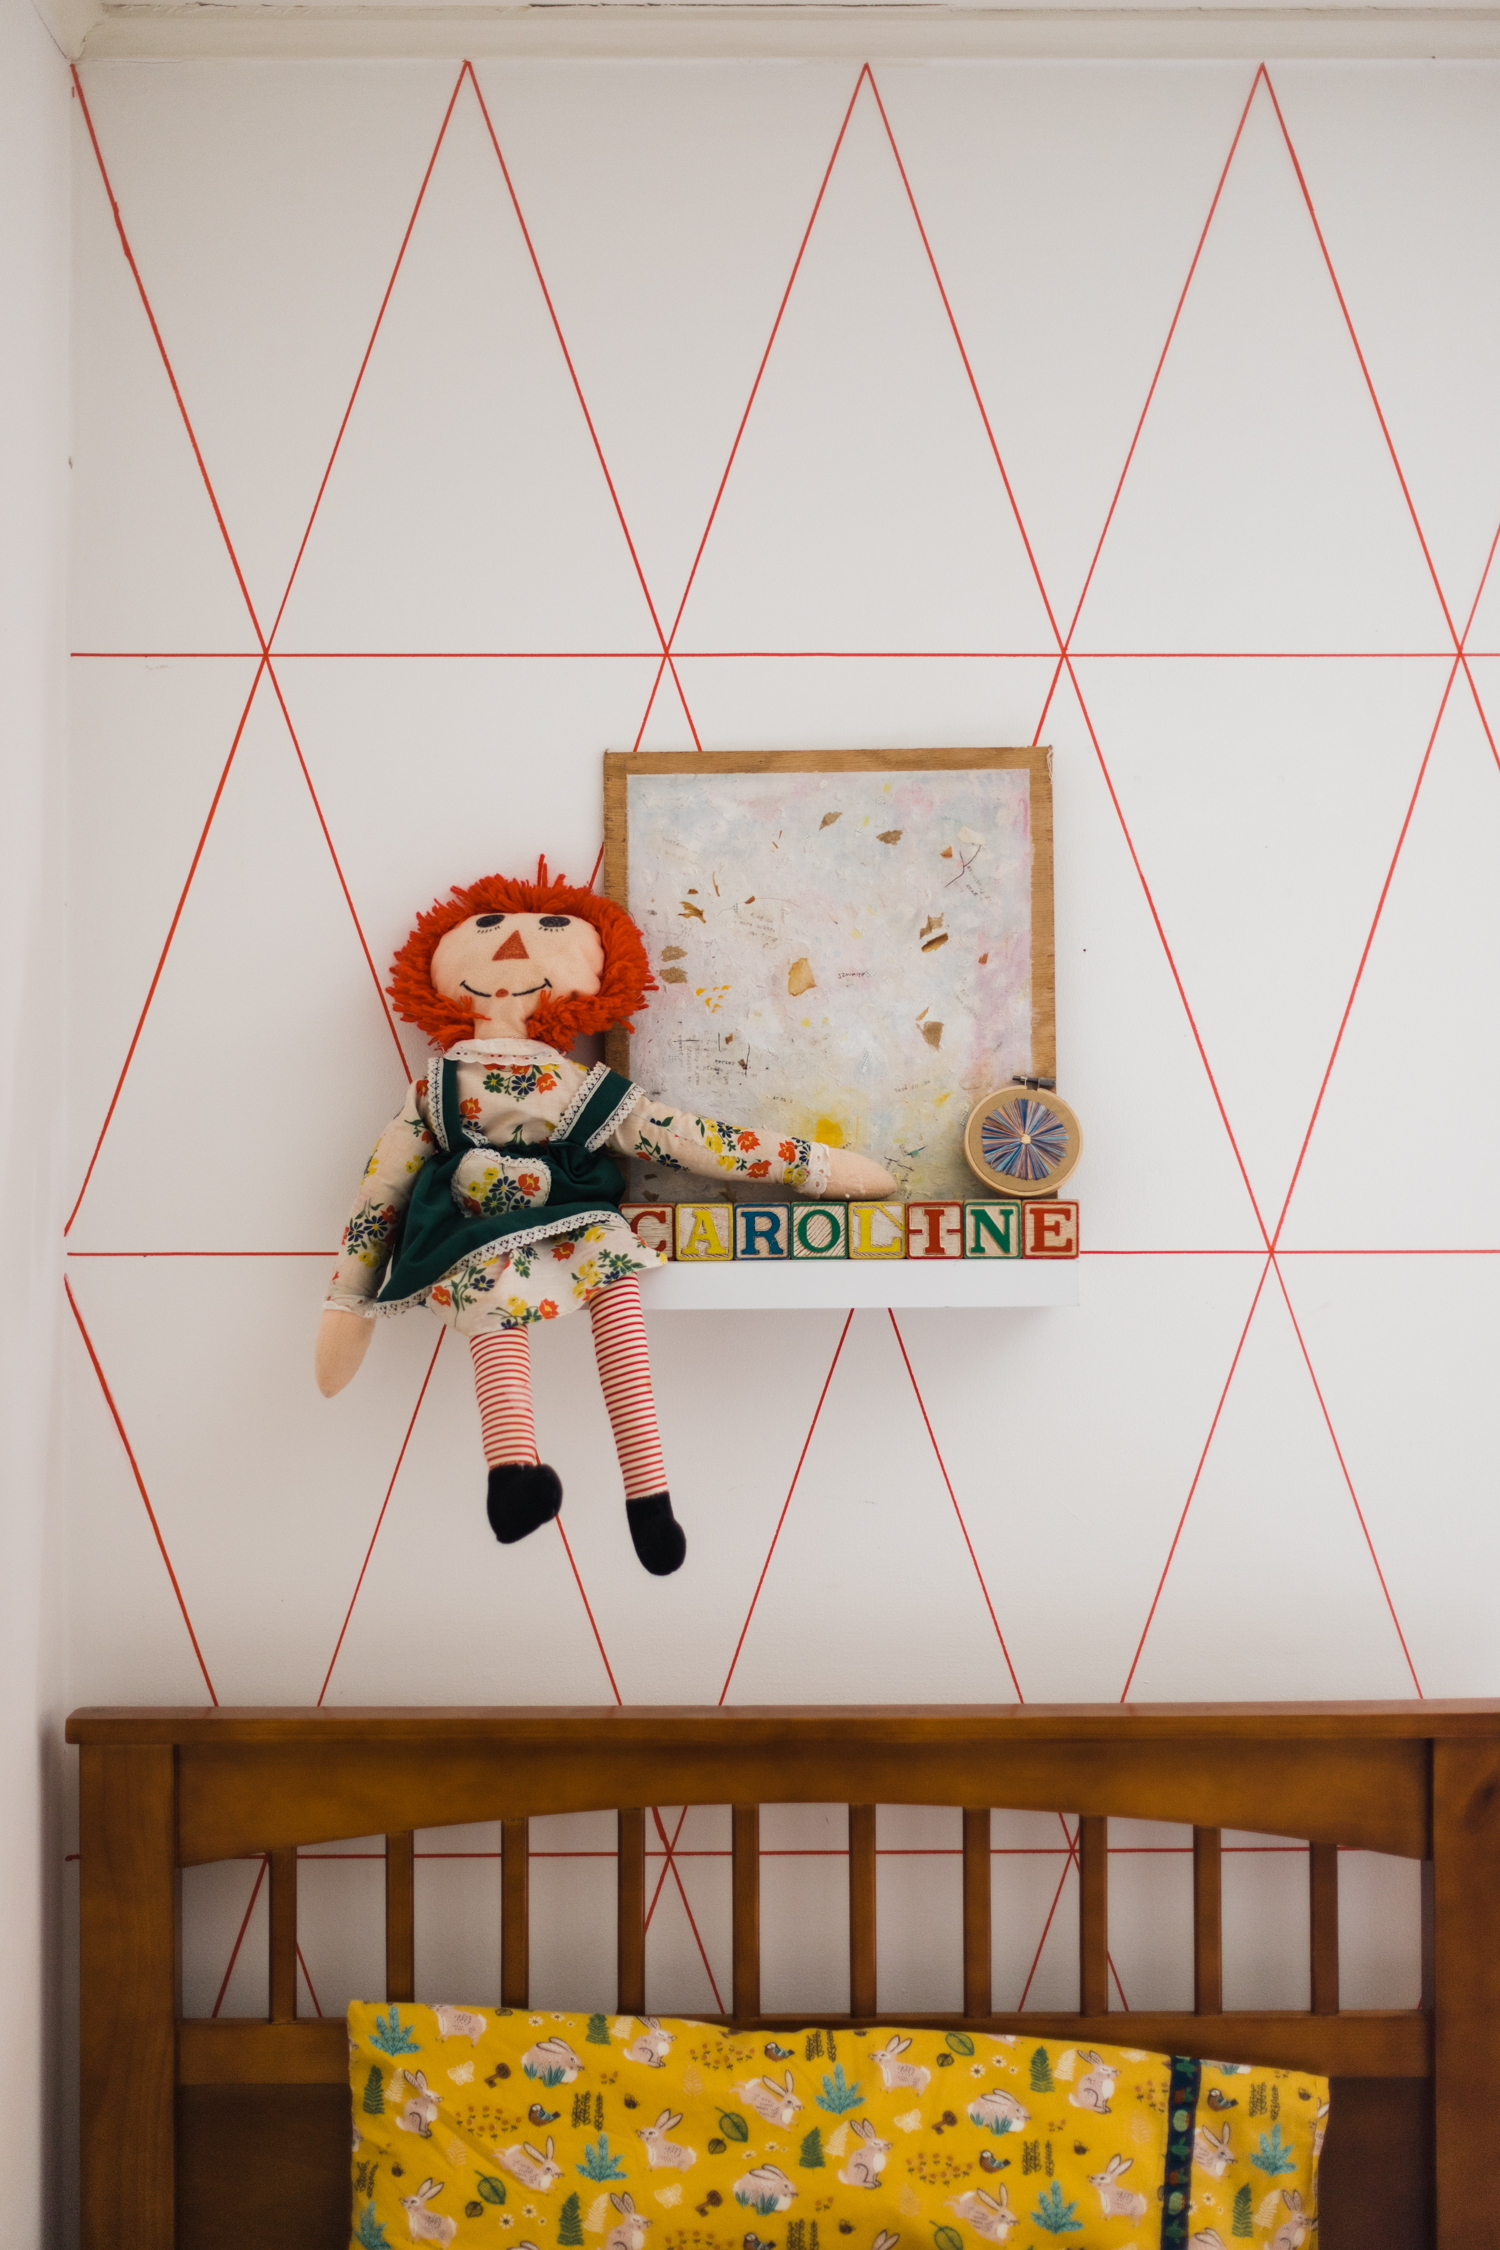 I mounted shelves over each of the beds and created little vignettes on each. For Caroline, vintage blocks spelling her name, an abstract painting given to us by a friend for our wedding and a Raggedy Ann doll a waitress made for me when I was a baby in the 80s.